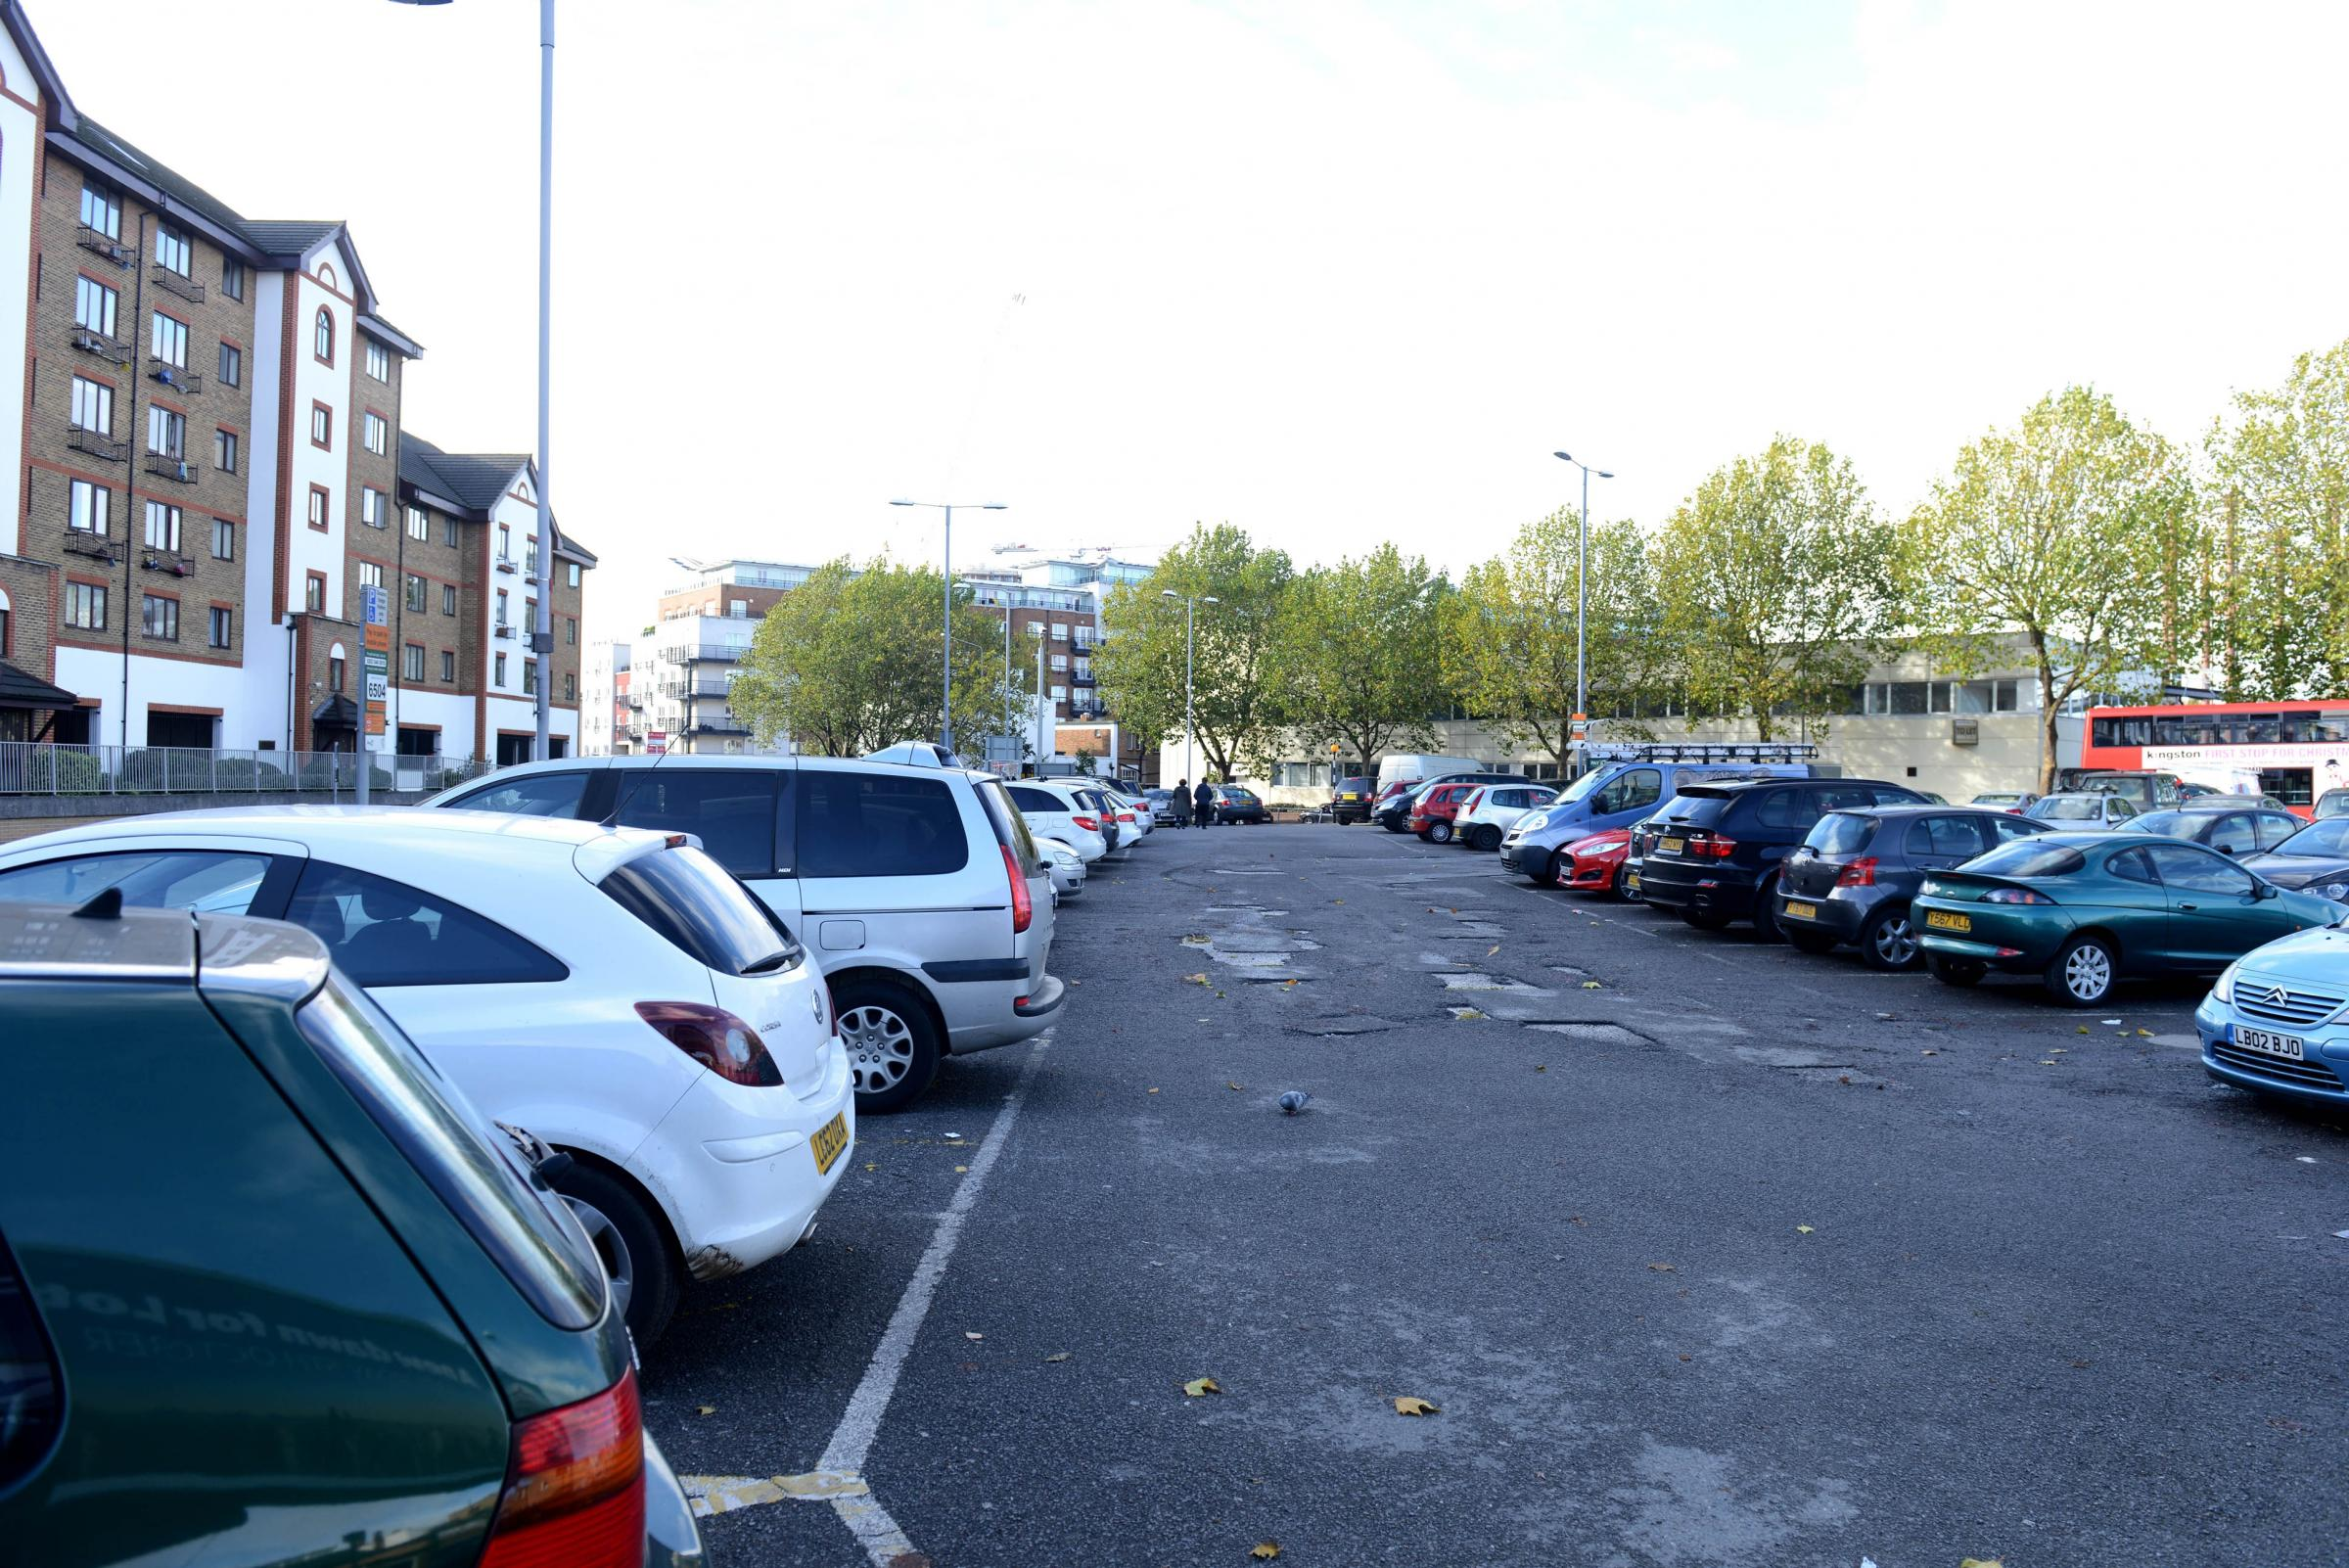 Canbury Place car park, with the Kingsgate Centre in the background, could be the subject of a land swap deal